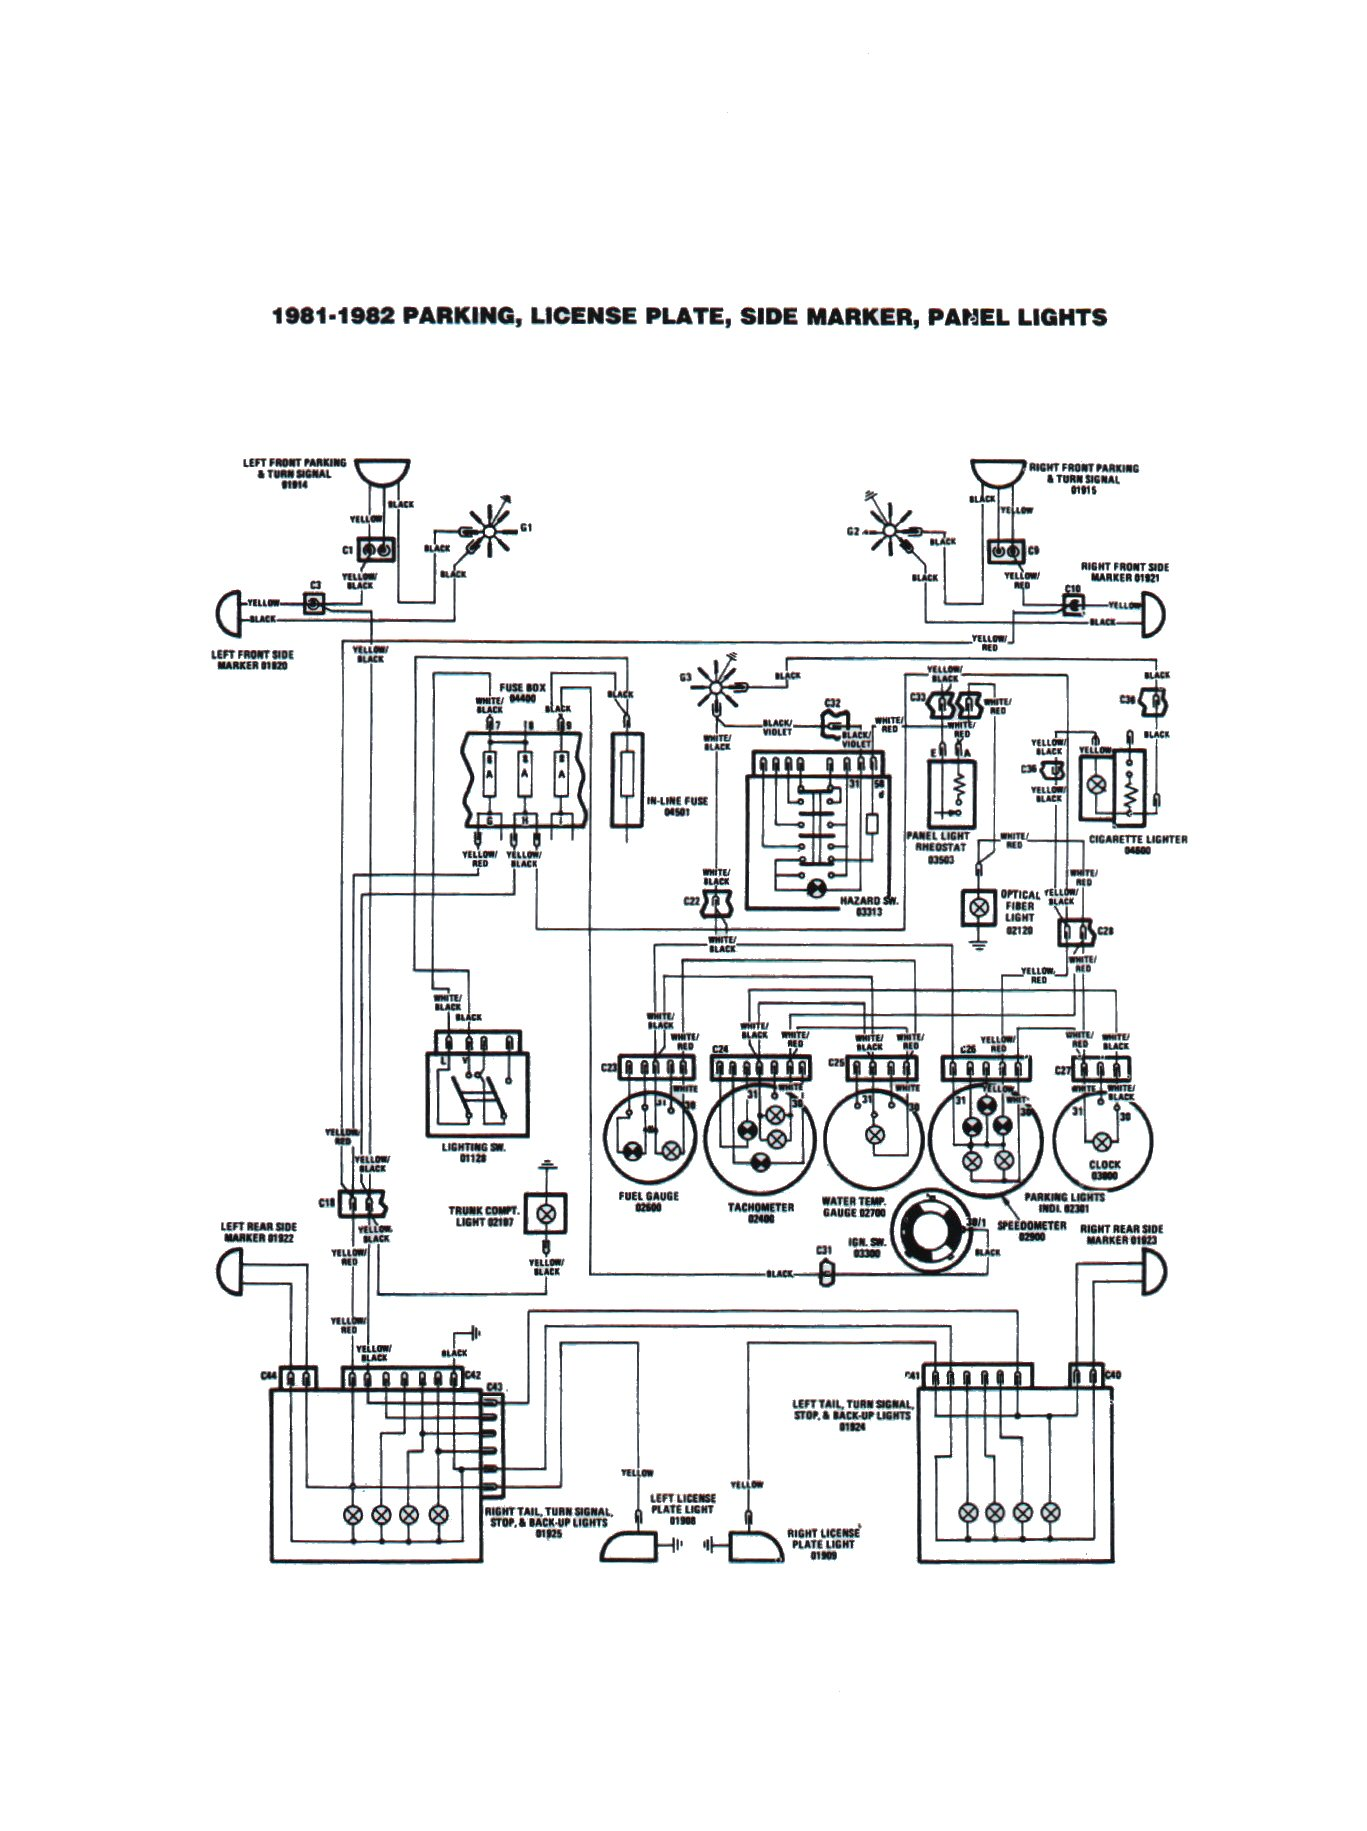 1981 fiat spider wiring diagram   31 wiring diagram images